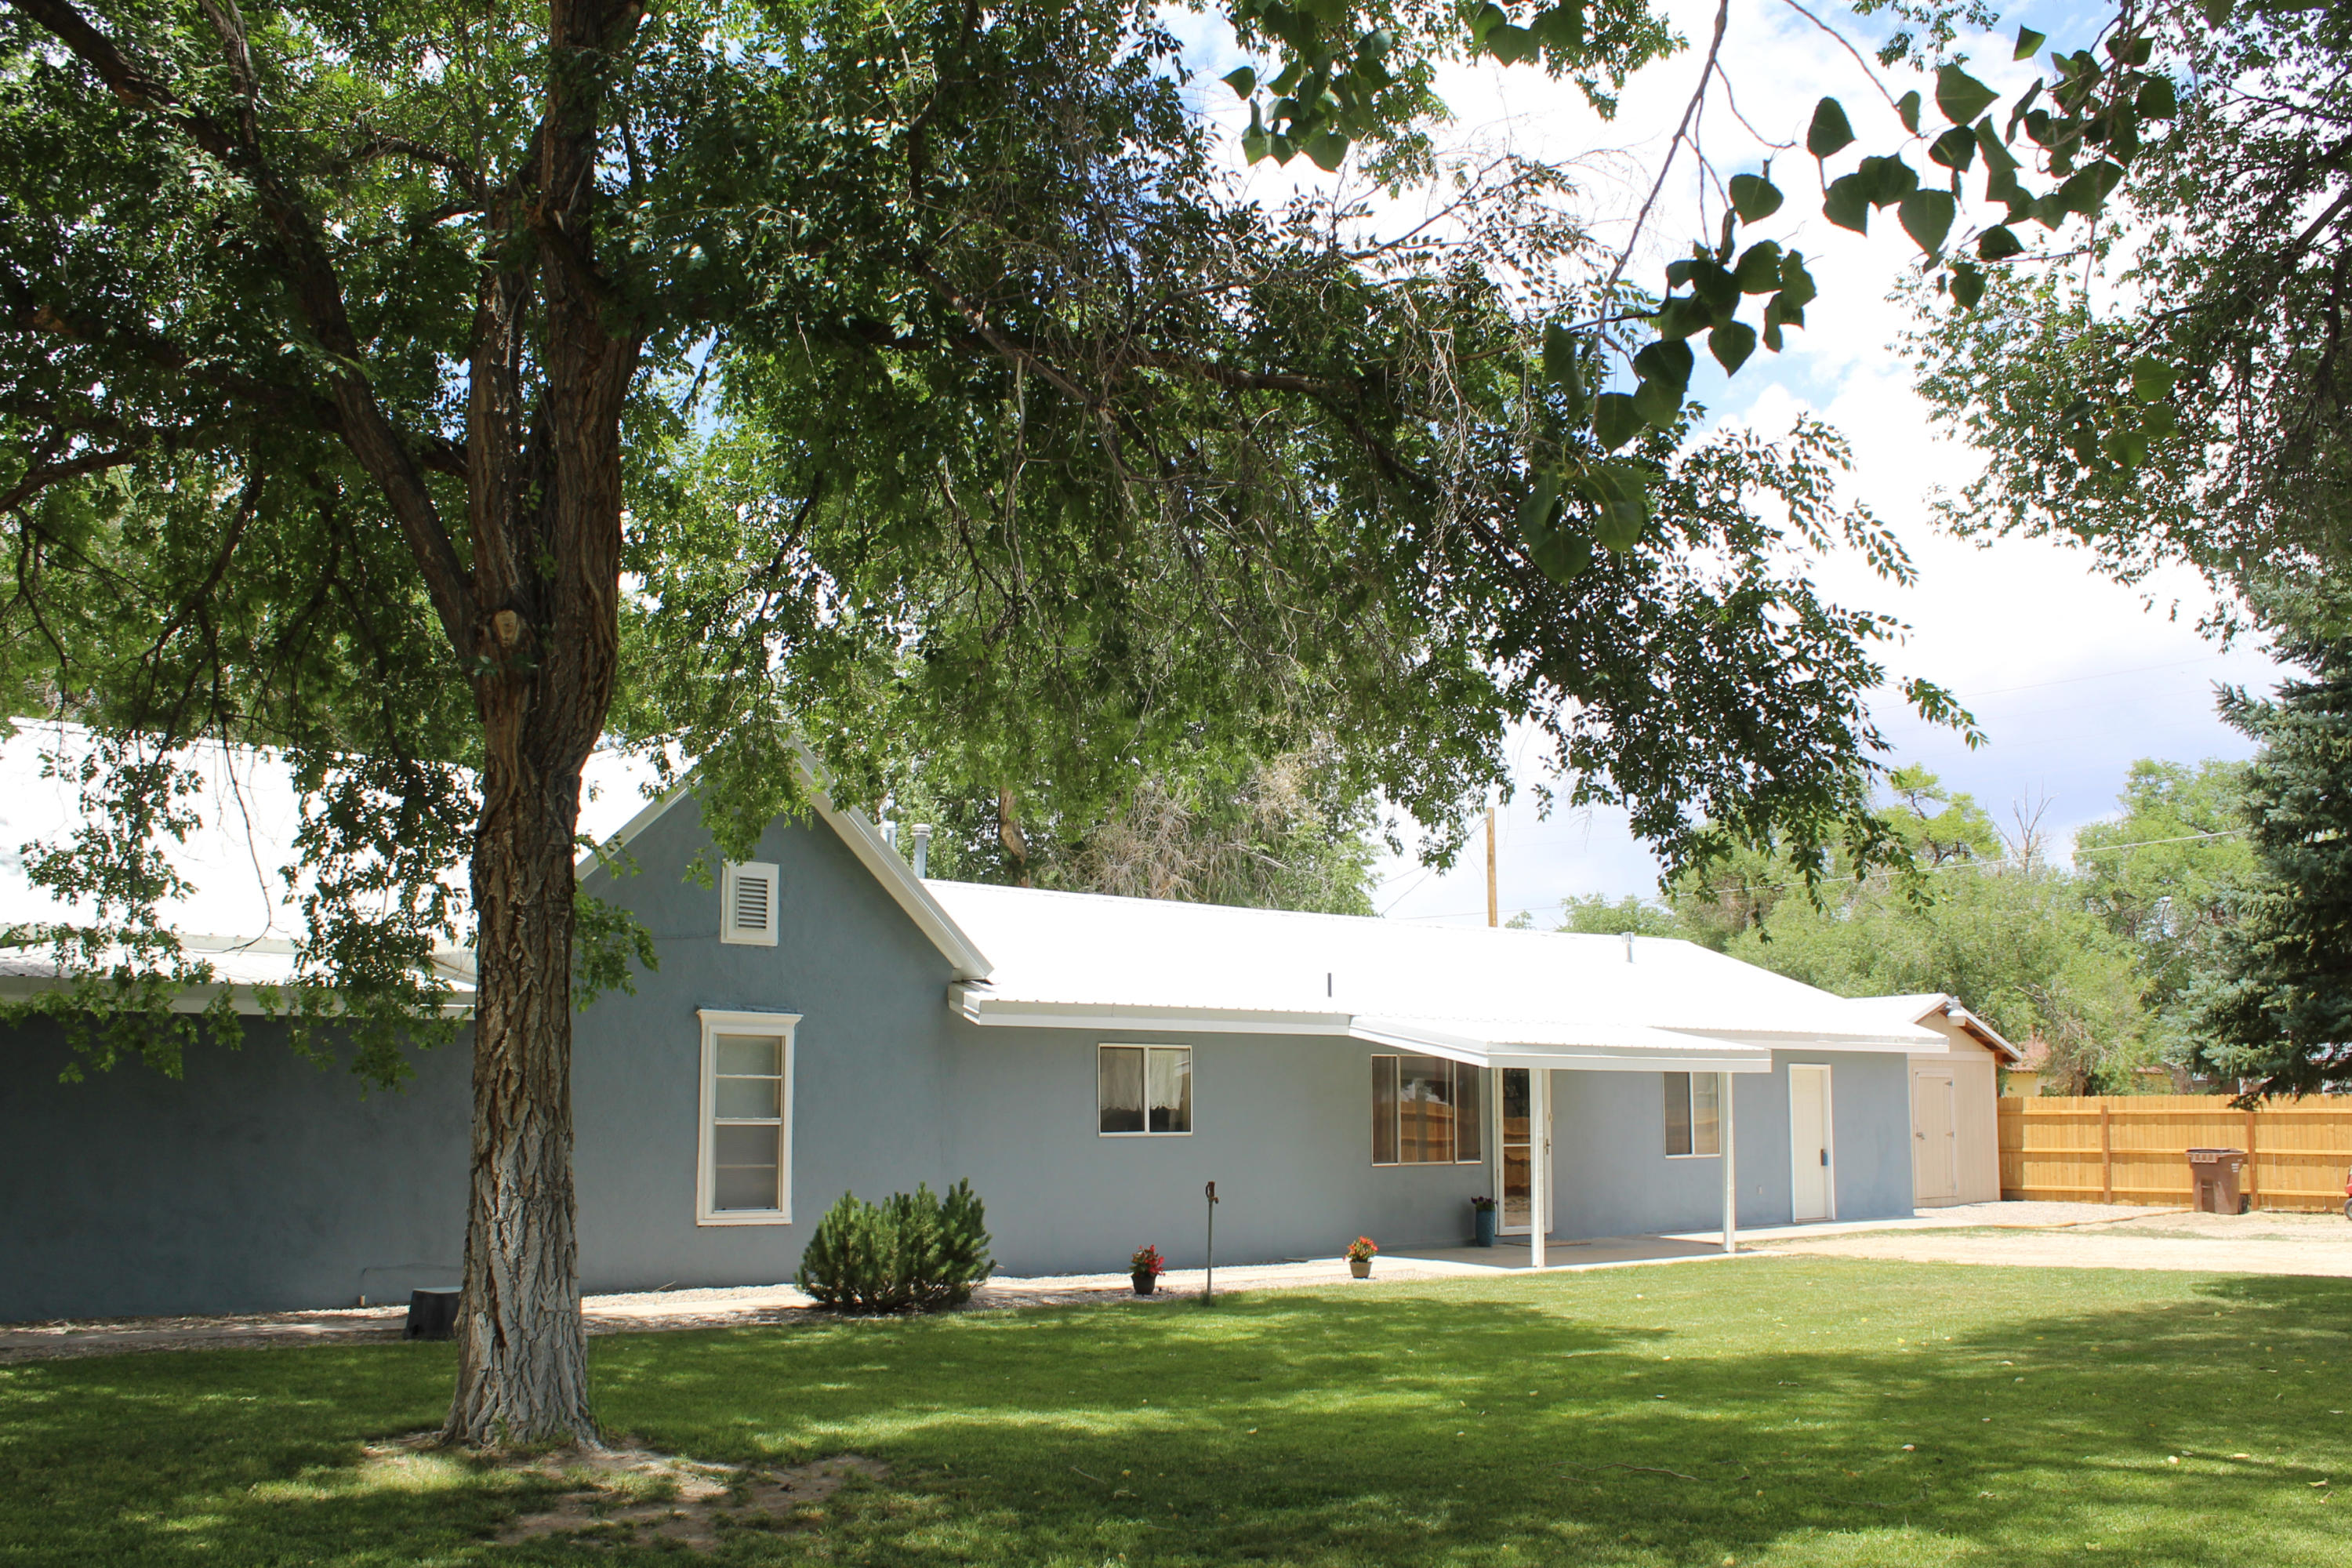 This recently updated home with a beautiful well-maintained yard is located in the quaint town of Estancia, New Mexico. This is small town America with a lifestyle that is easy going and rural. The home is 4 bedrooms and 2 baths, has a large spacious living area with a stacked rock accent wall and pellet stove. The kitchen has an abundance of cabinetry and storage space including a small basement. There is an office area just off the master bedroom with a utility area and a separate entrance. The backyard is newly fenced and is a great area for small animals. The Cibola National Forest is close by for recreational opportunities and Albuquerque and Santa Fe are both easy commutes in about an hour.